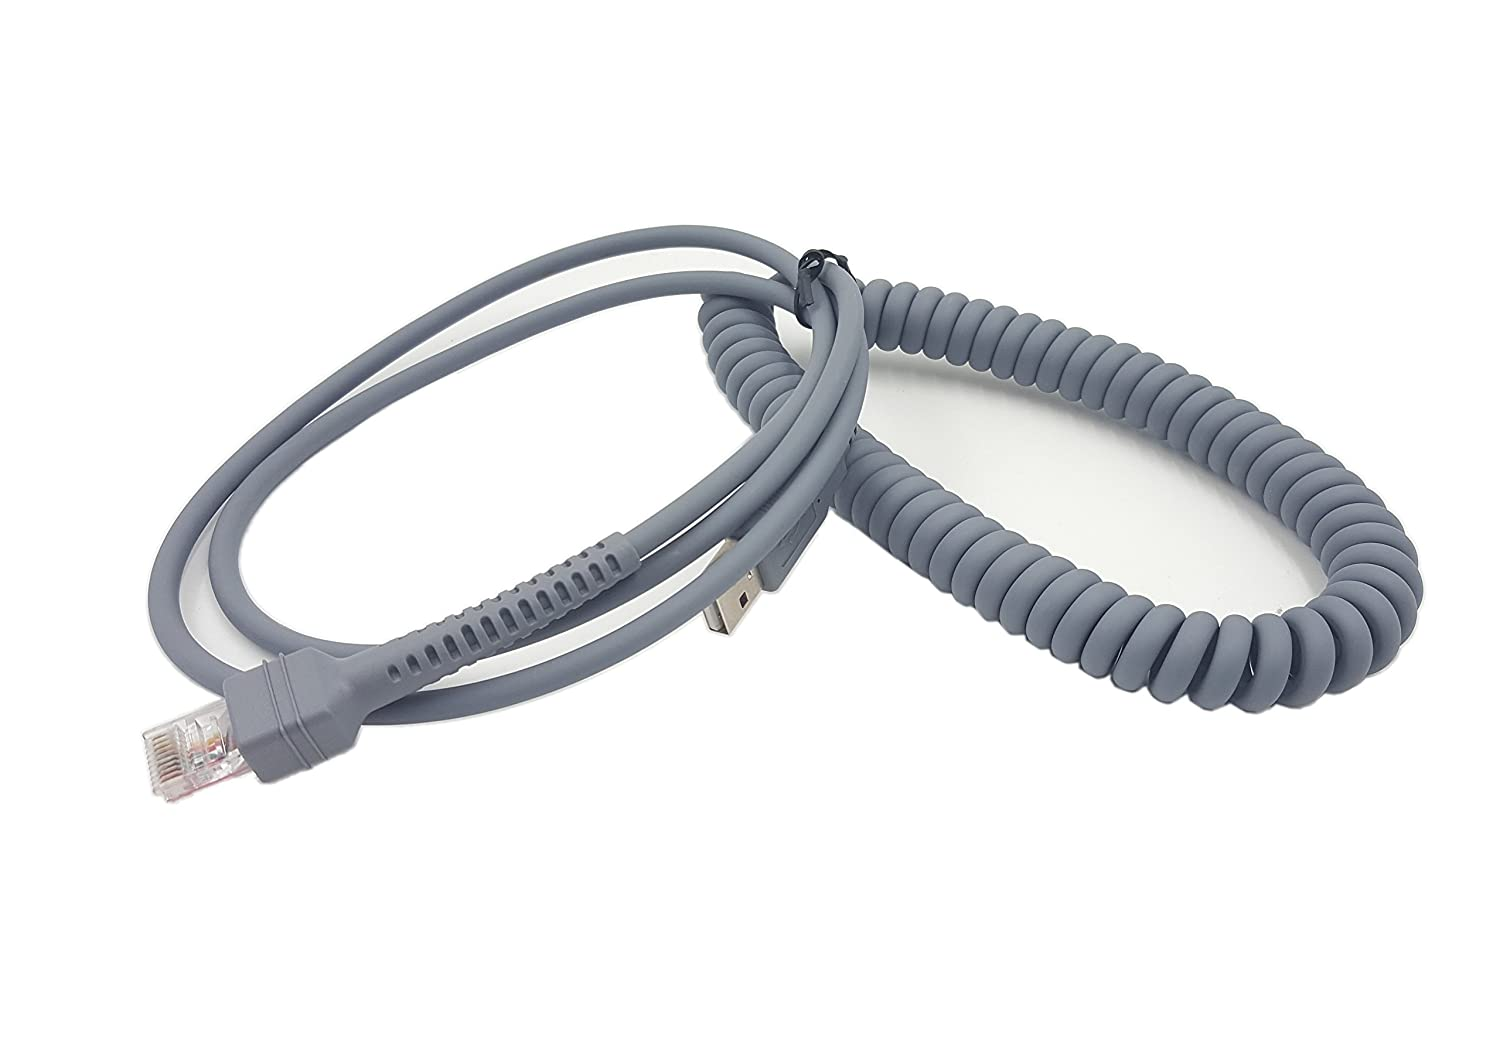 Ls2208 Usb Cable Schematic Sinloon Symbol A To Rj45 Coiled Spiral Extension Motorola Barcode Scanner Ls2208ap Ls1203 Ls4208 Ls4278